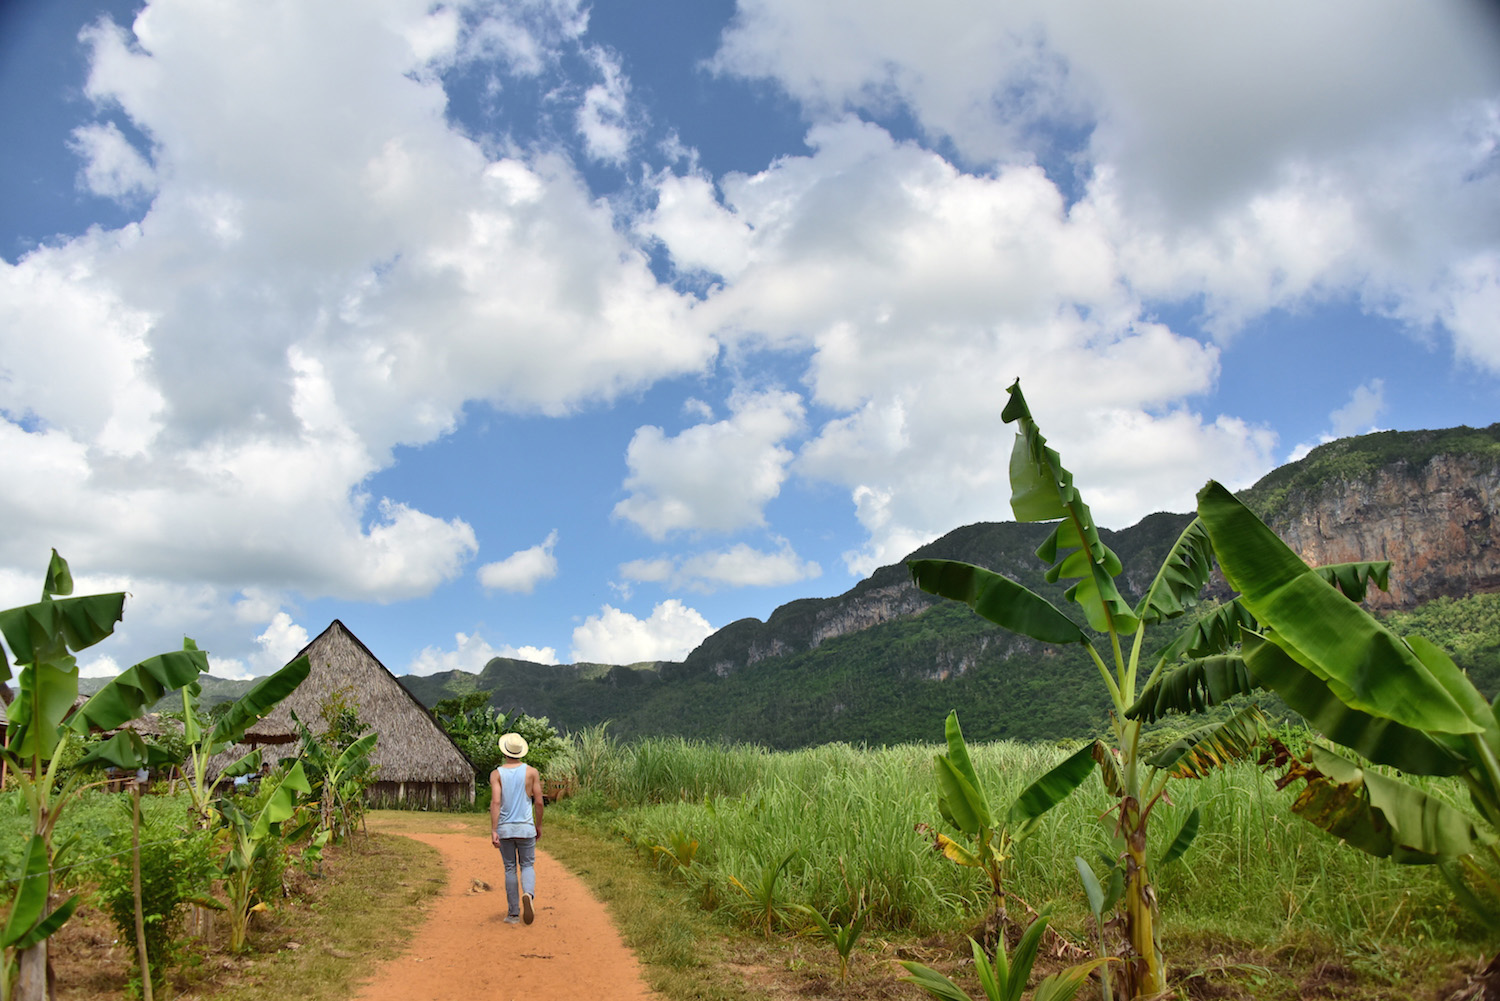 When in Cuba, Take a Puff on Those Cigars, Viñales Style